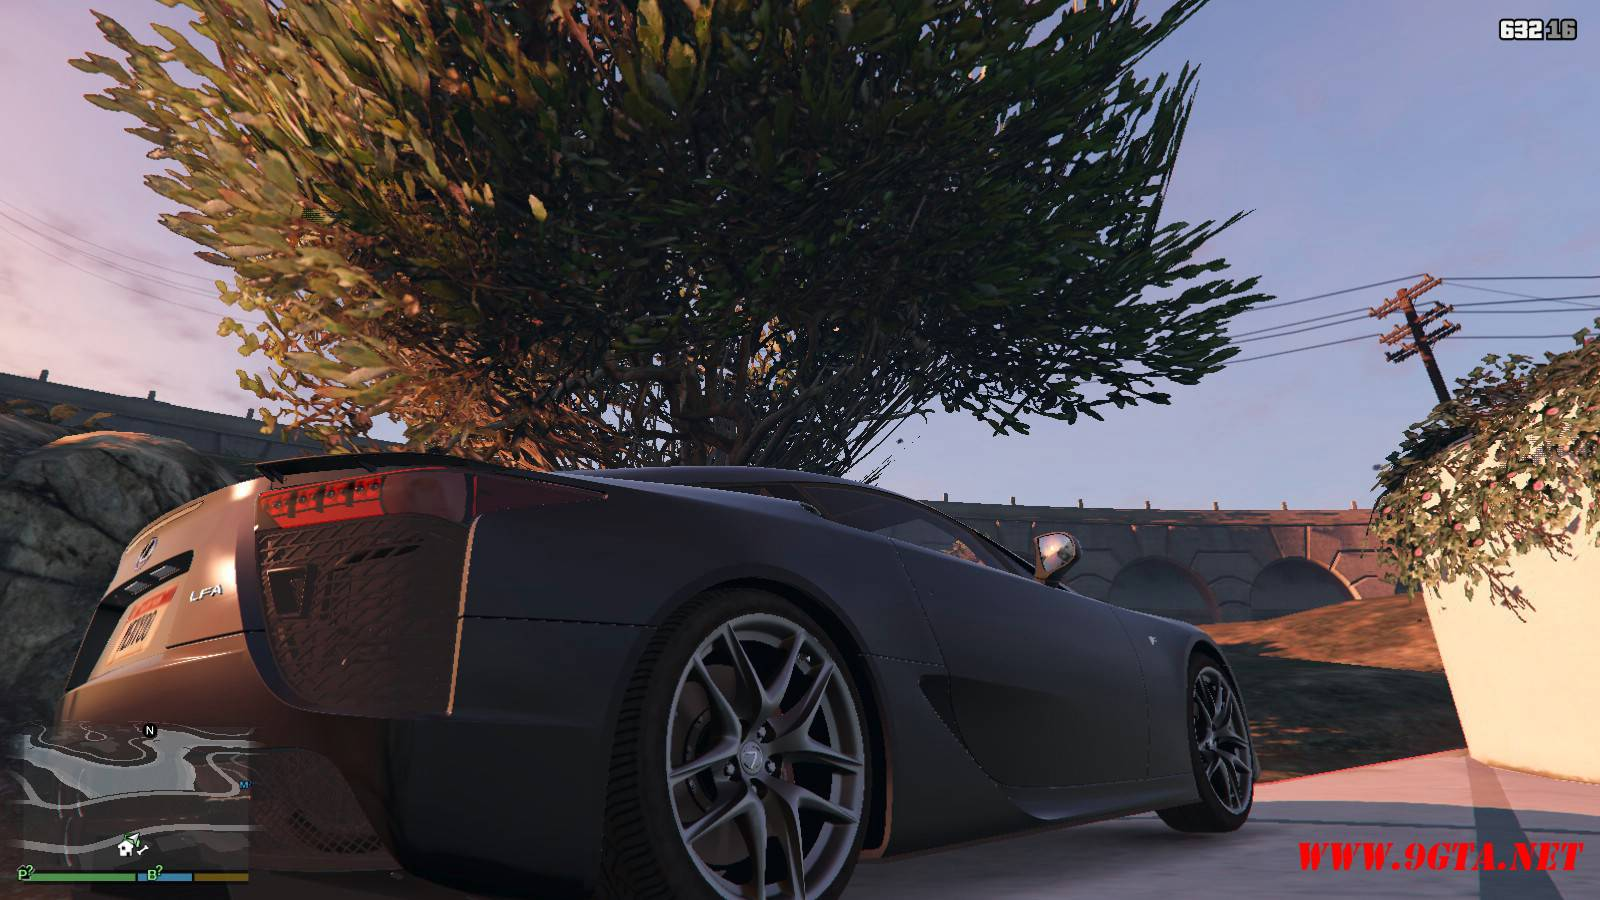 2010 Lexus LFA v2.0 Mod For GTA5 (6)